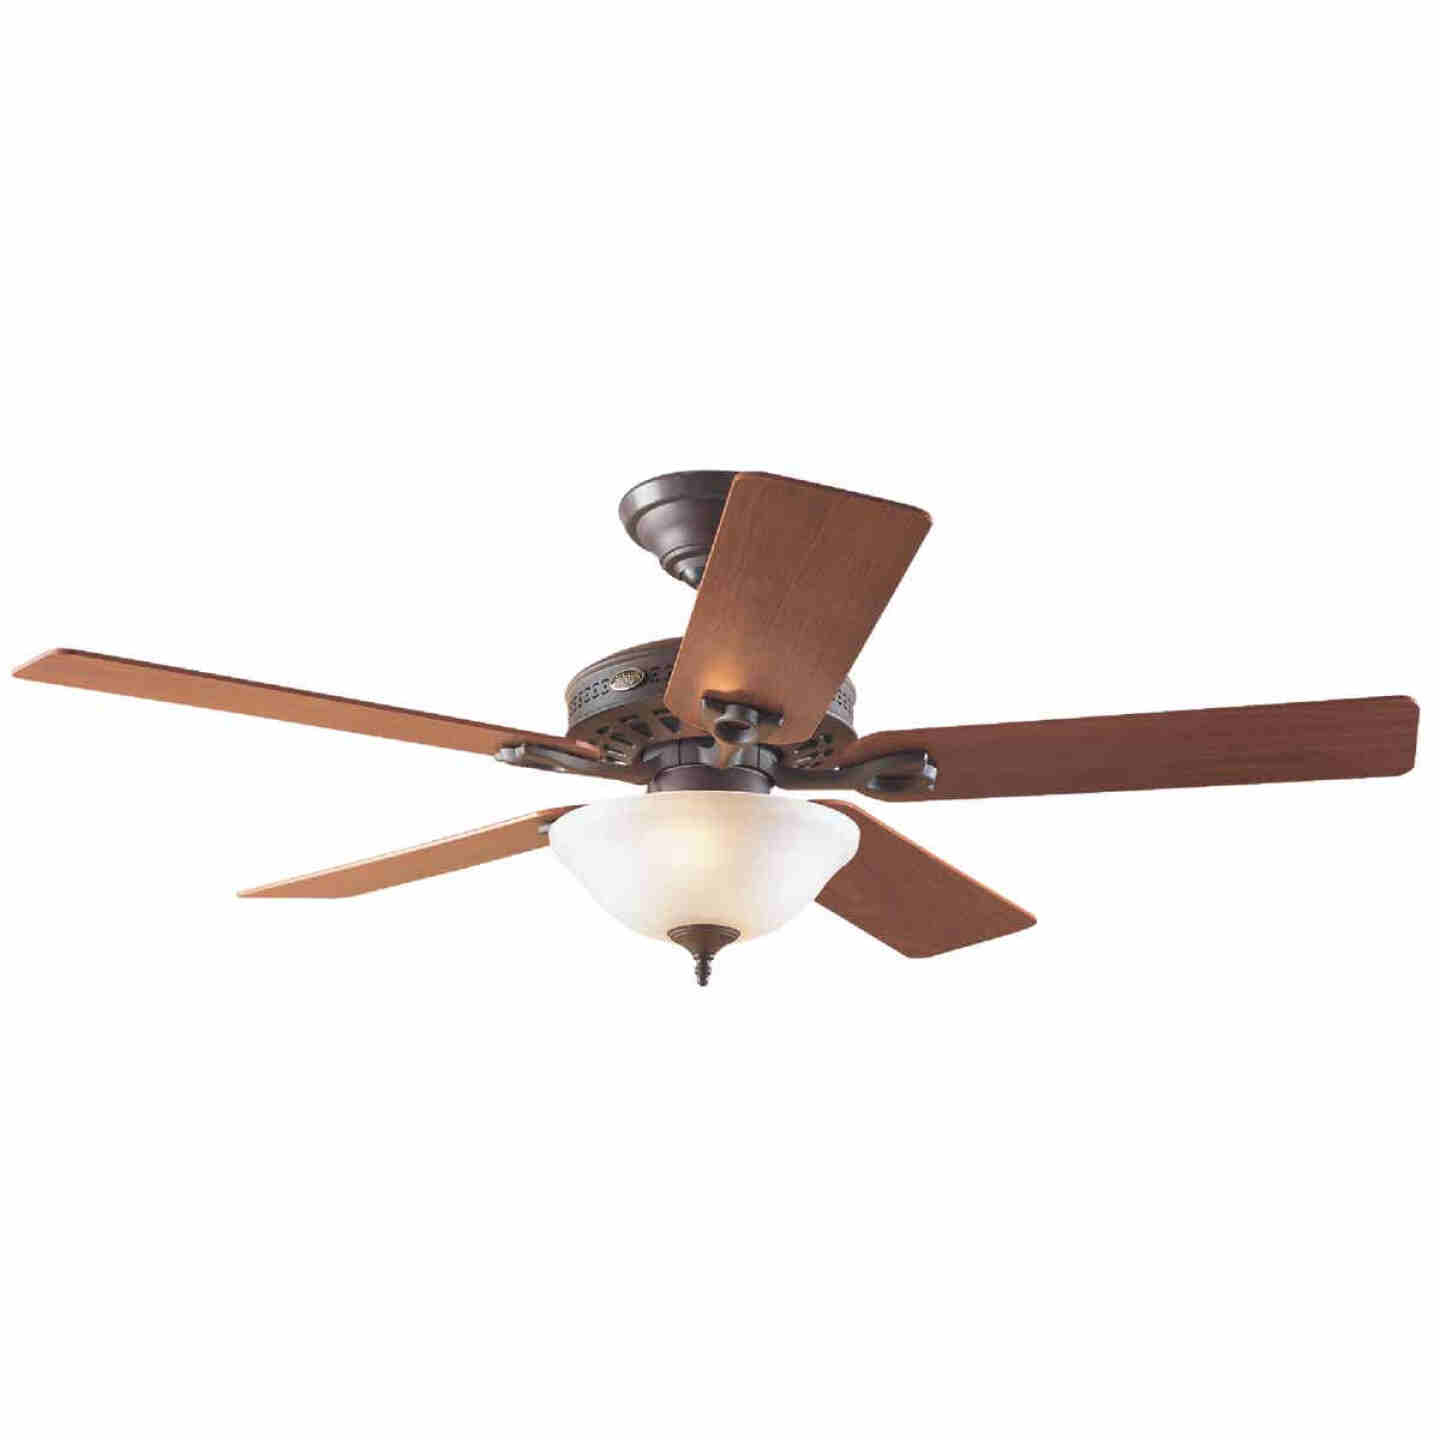 Hunter Astoria 52 In. New Bronze Ceiling Fan with Light Kit Image 1